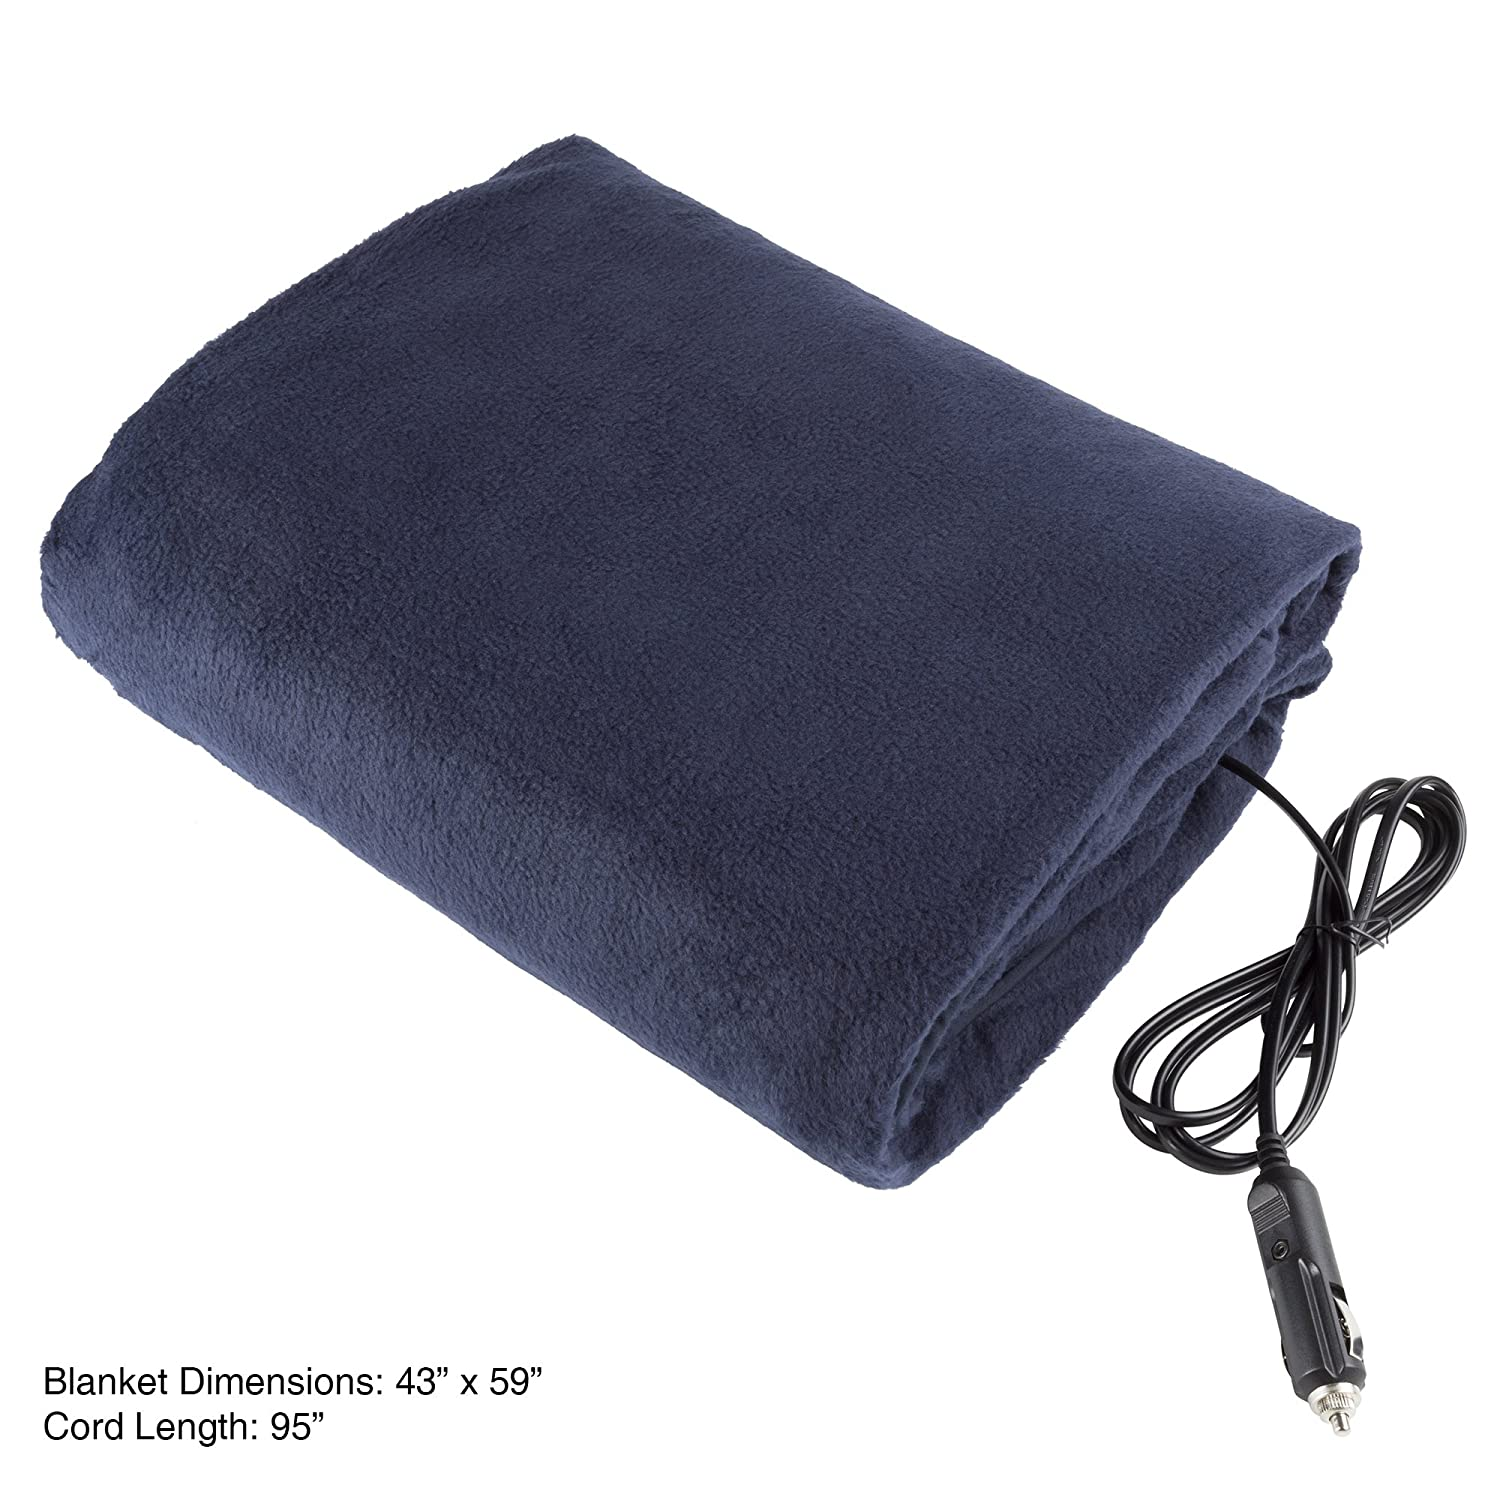 Discussion on this topic: This Heated Blanket Plugs Into Your Car , this-heated-blanket-plugs-into-your-car/